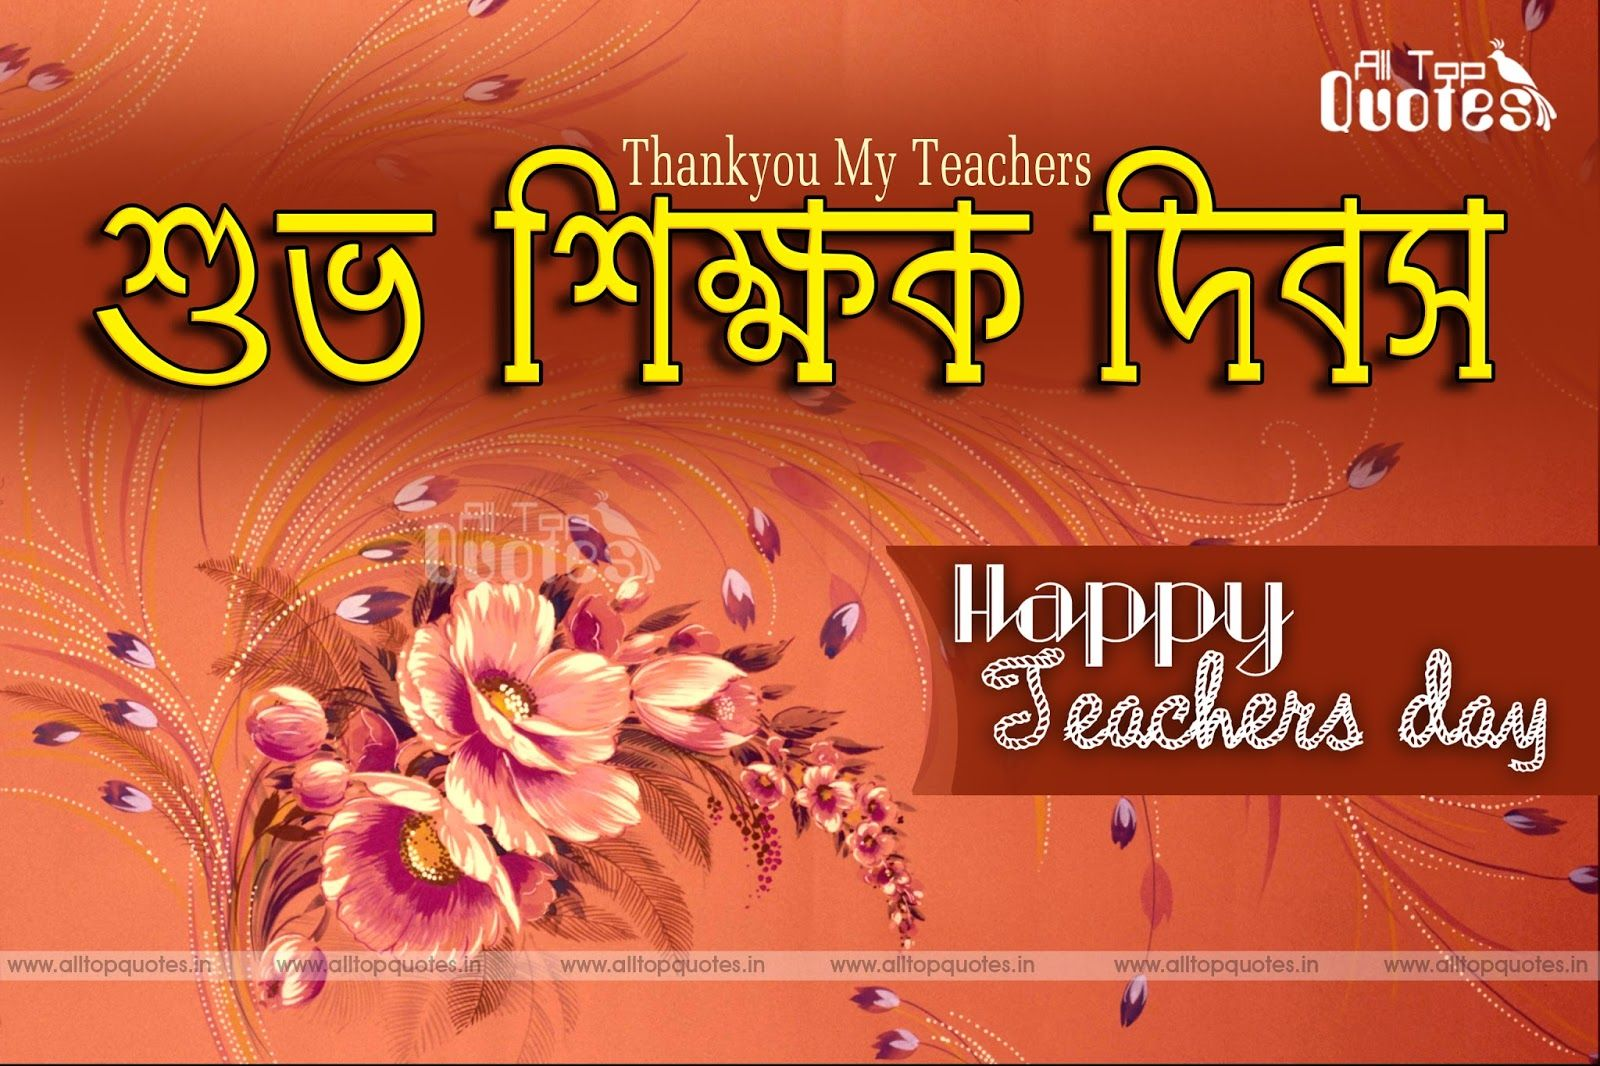 Happy teachers day bangla quotes in bengali language all top happy teachers day bangla quotes in bengali language all top quotes telugu quotes stopboris Gallery